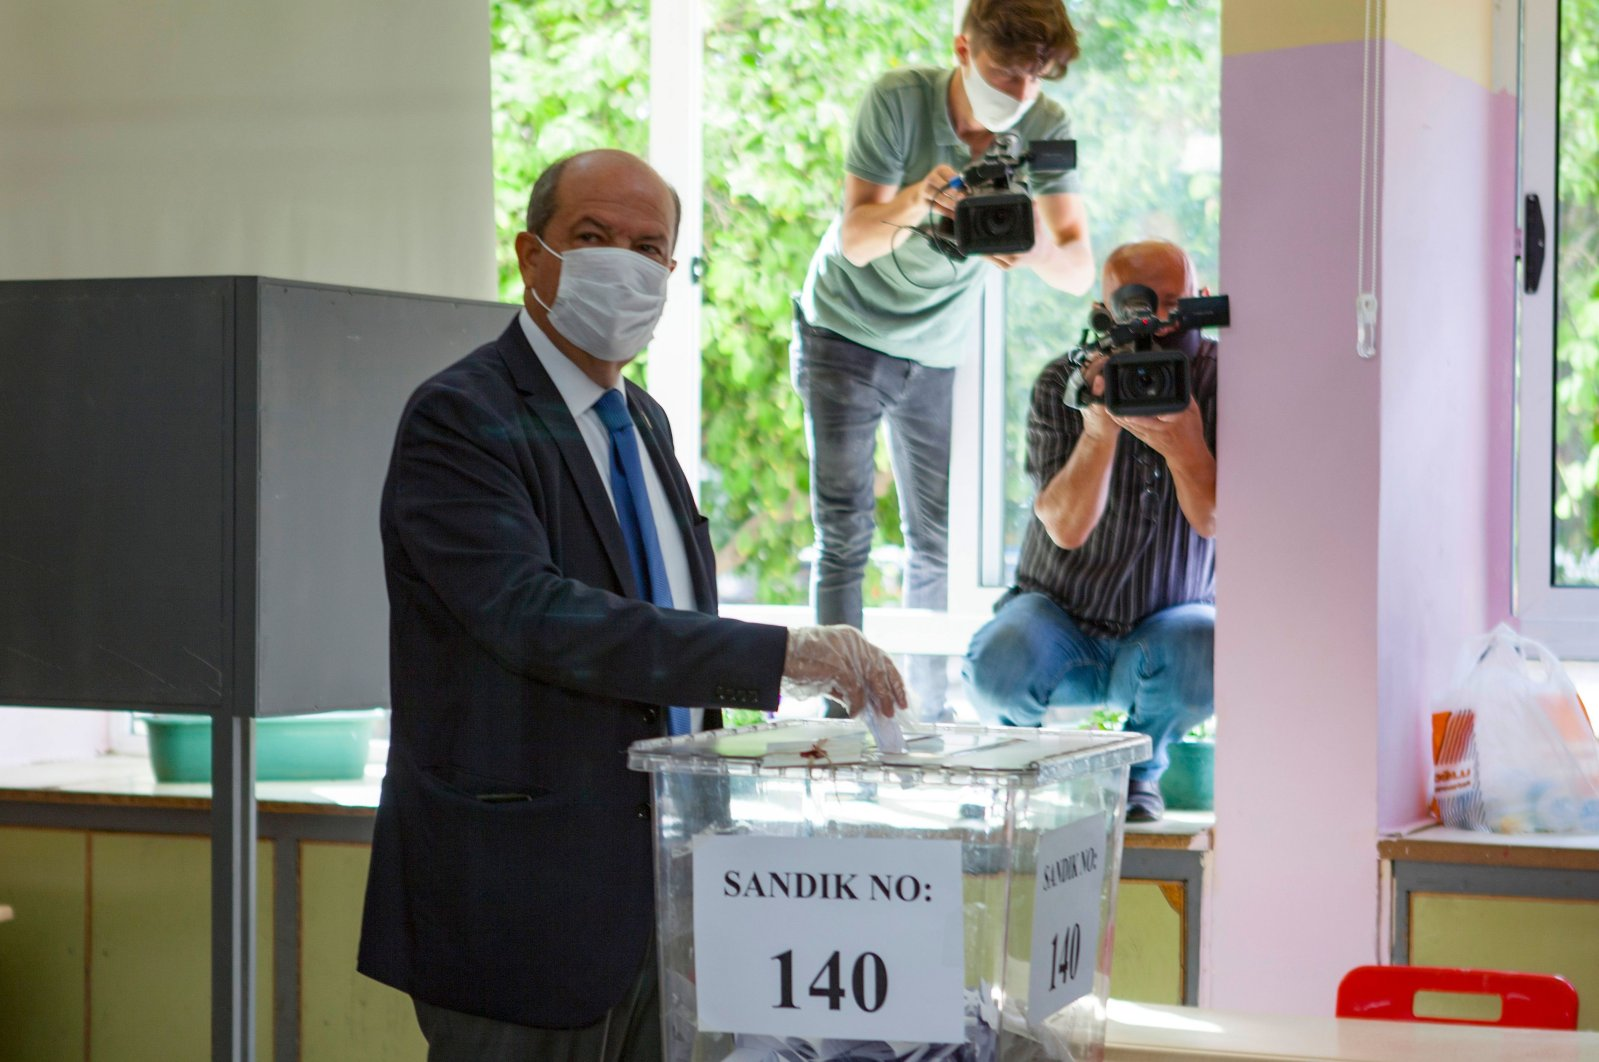 Turkish Cypriot Prime Minister Ersin Tatar casts his vote at a polling station in the northern part of Nicosia (Lefkoşa) during the presidential election, Oct. 11, 2020. (AFP Photo)